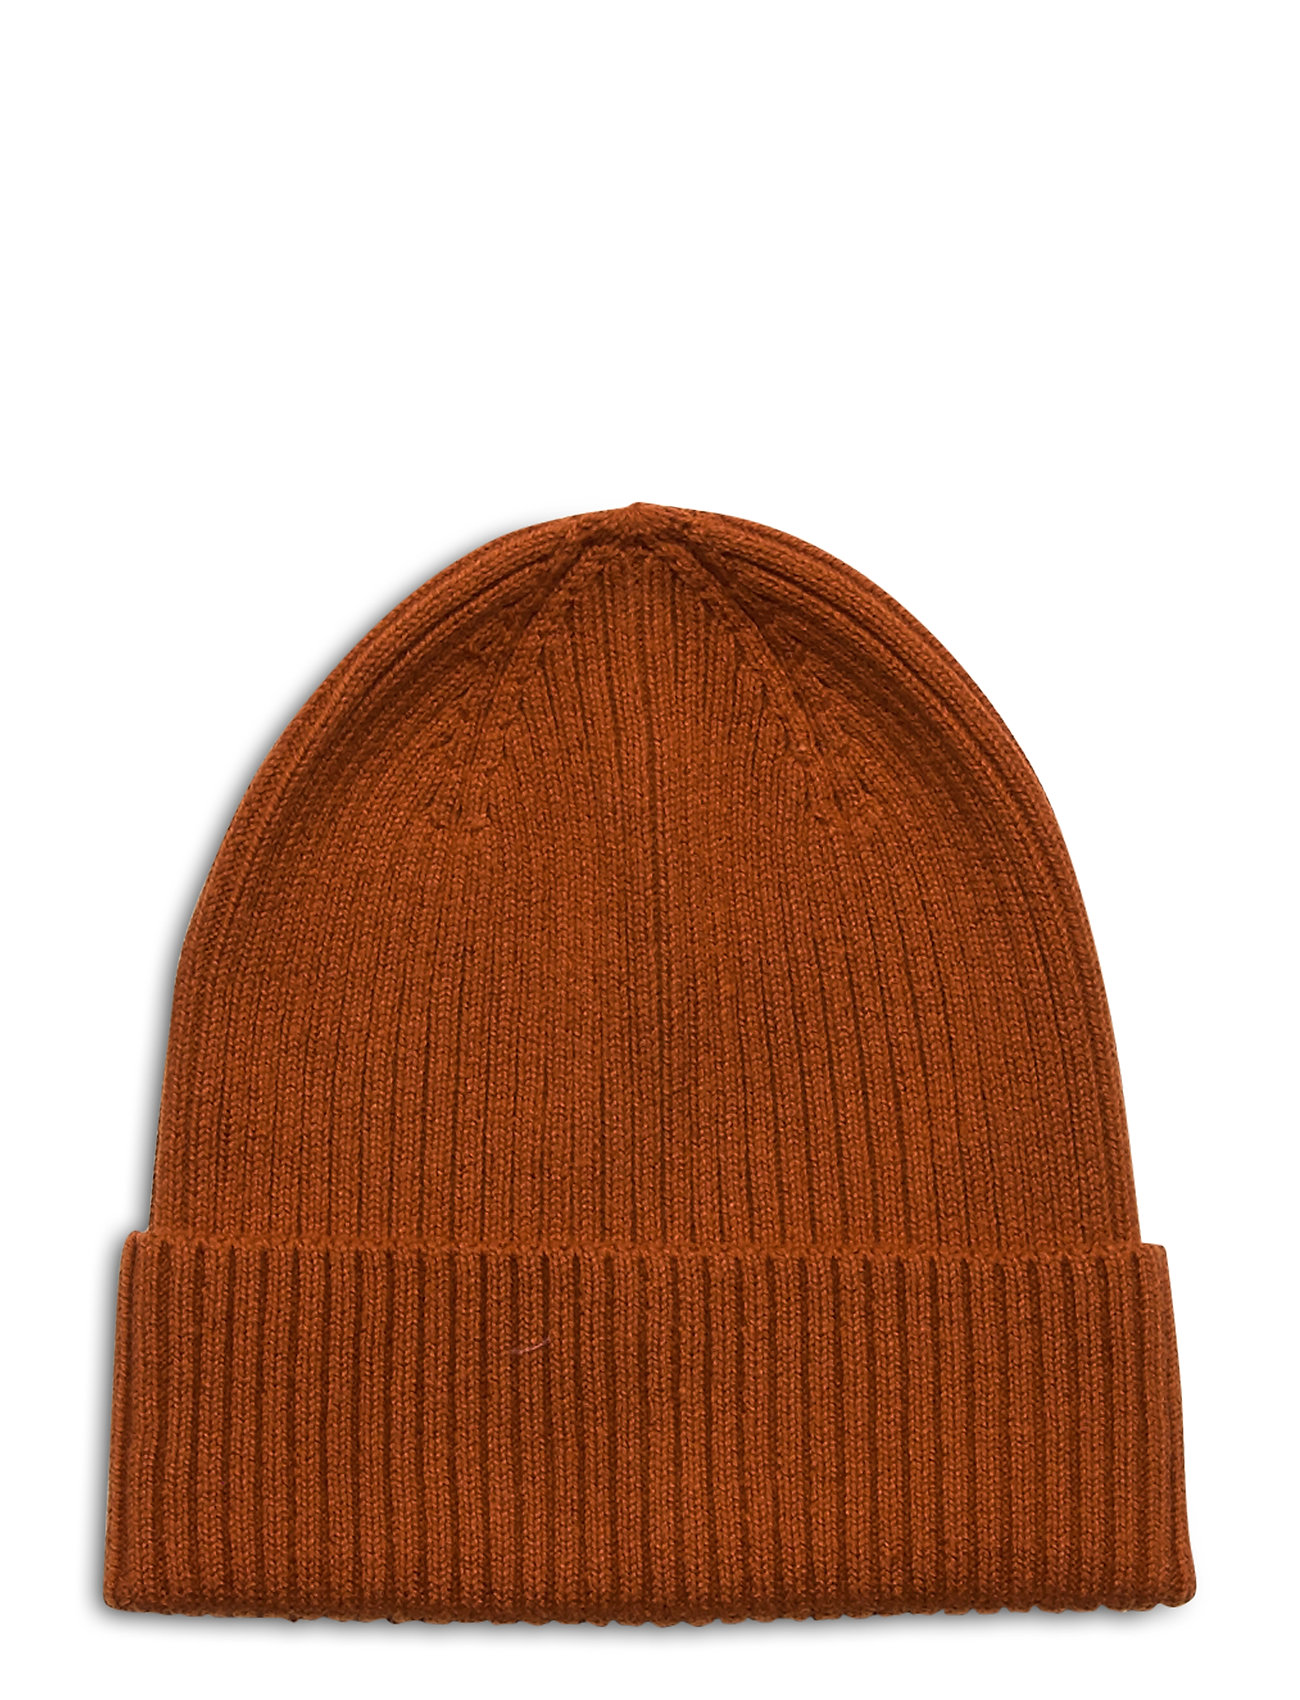 Image of Cap Rib Beanie Sustainable Accessories Headwear Hats Brun Lindex (3448365475)